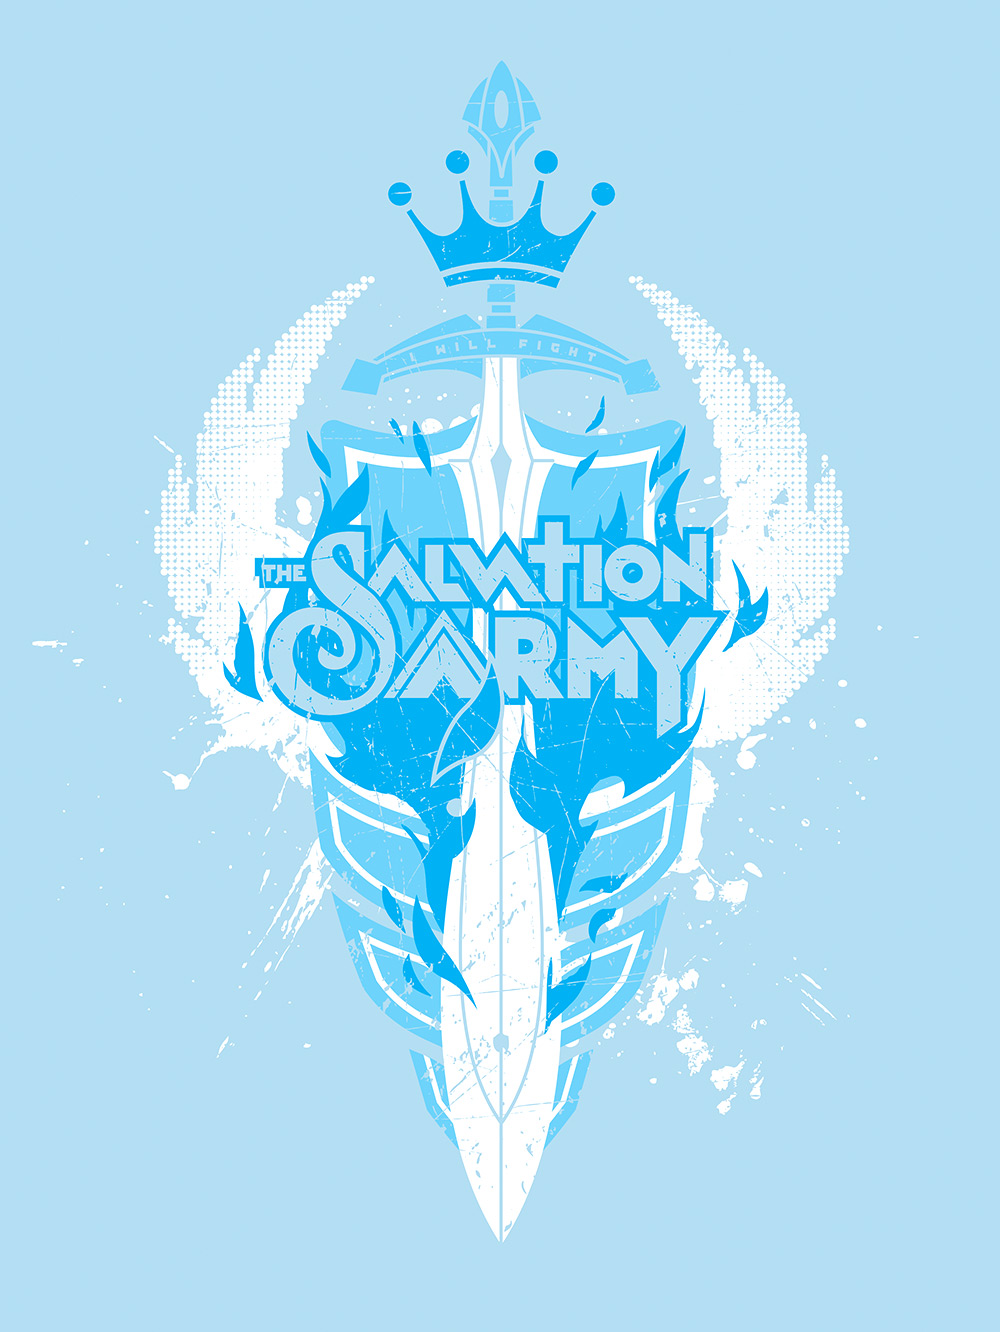 Salvation Army: Illustration